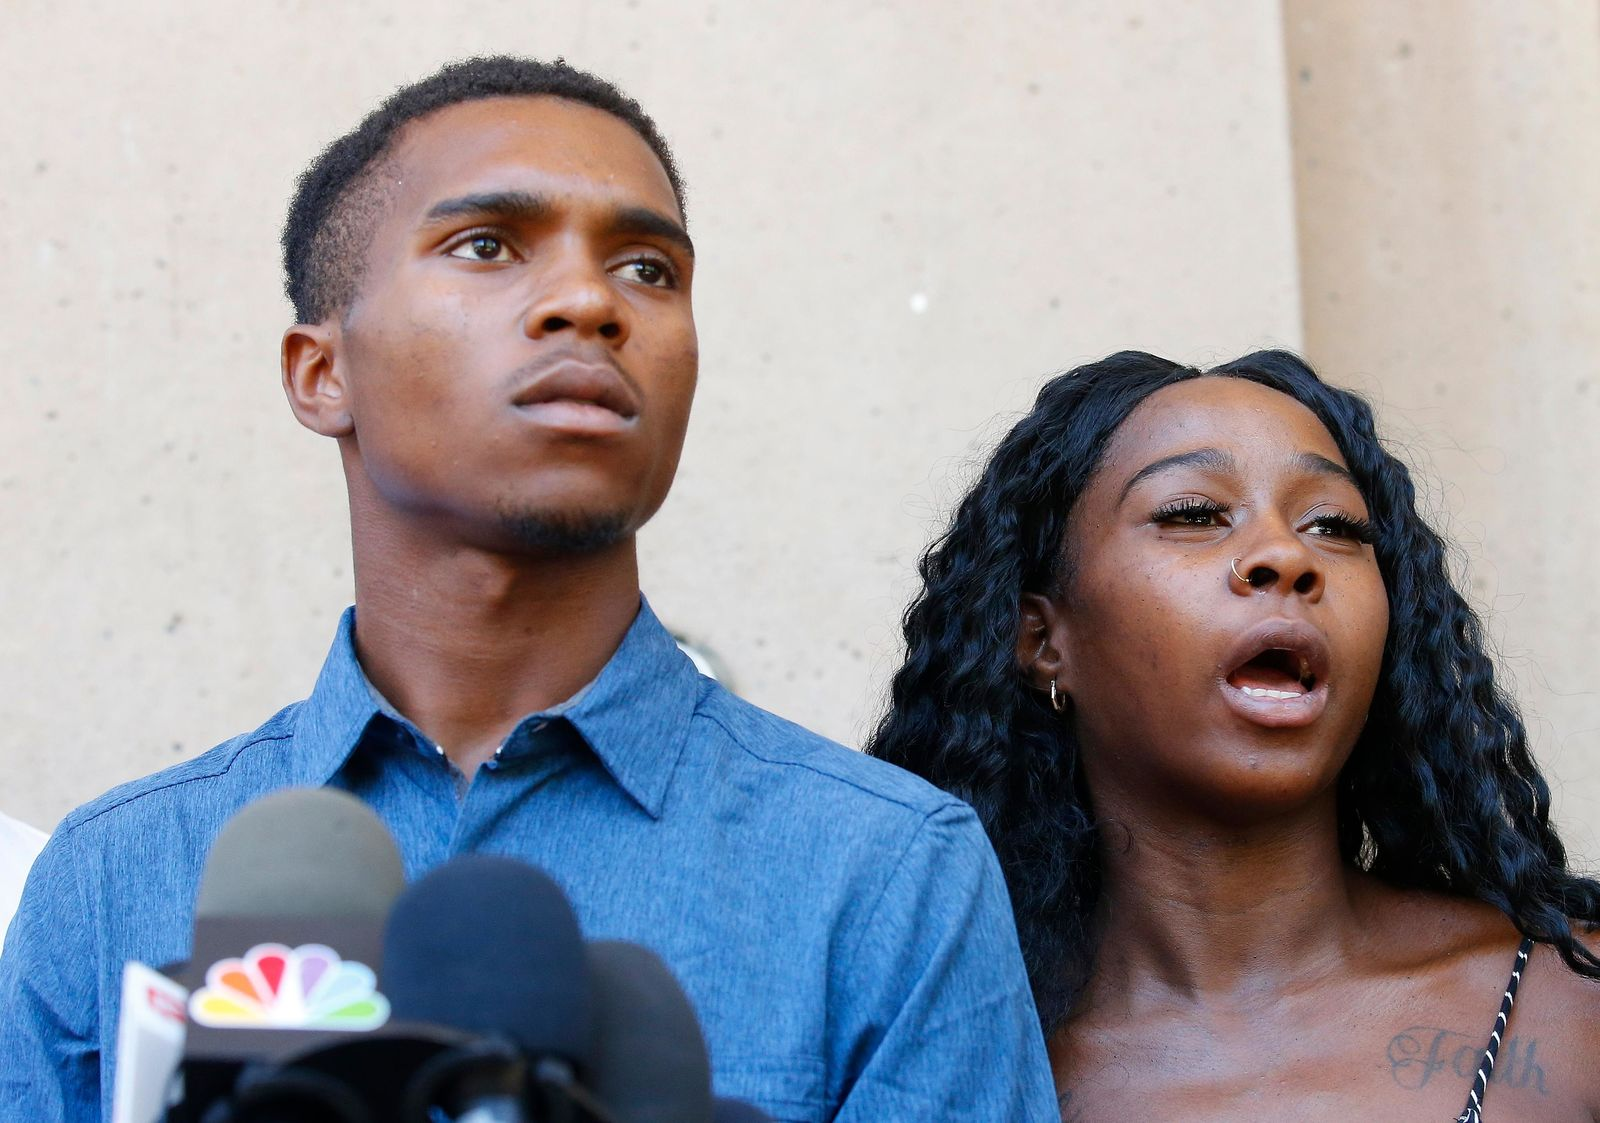 Iesha Harper, right, answers a question during a news conference as she is joined by her fiancee Dravon Ames, left, at Phoenix City Hall, Monday, June 17, 2019, in Phoenix. (AP Photo/Ross D. Franklin)